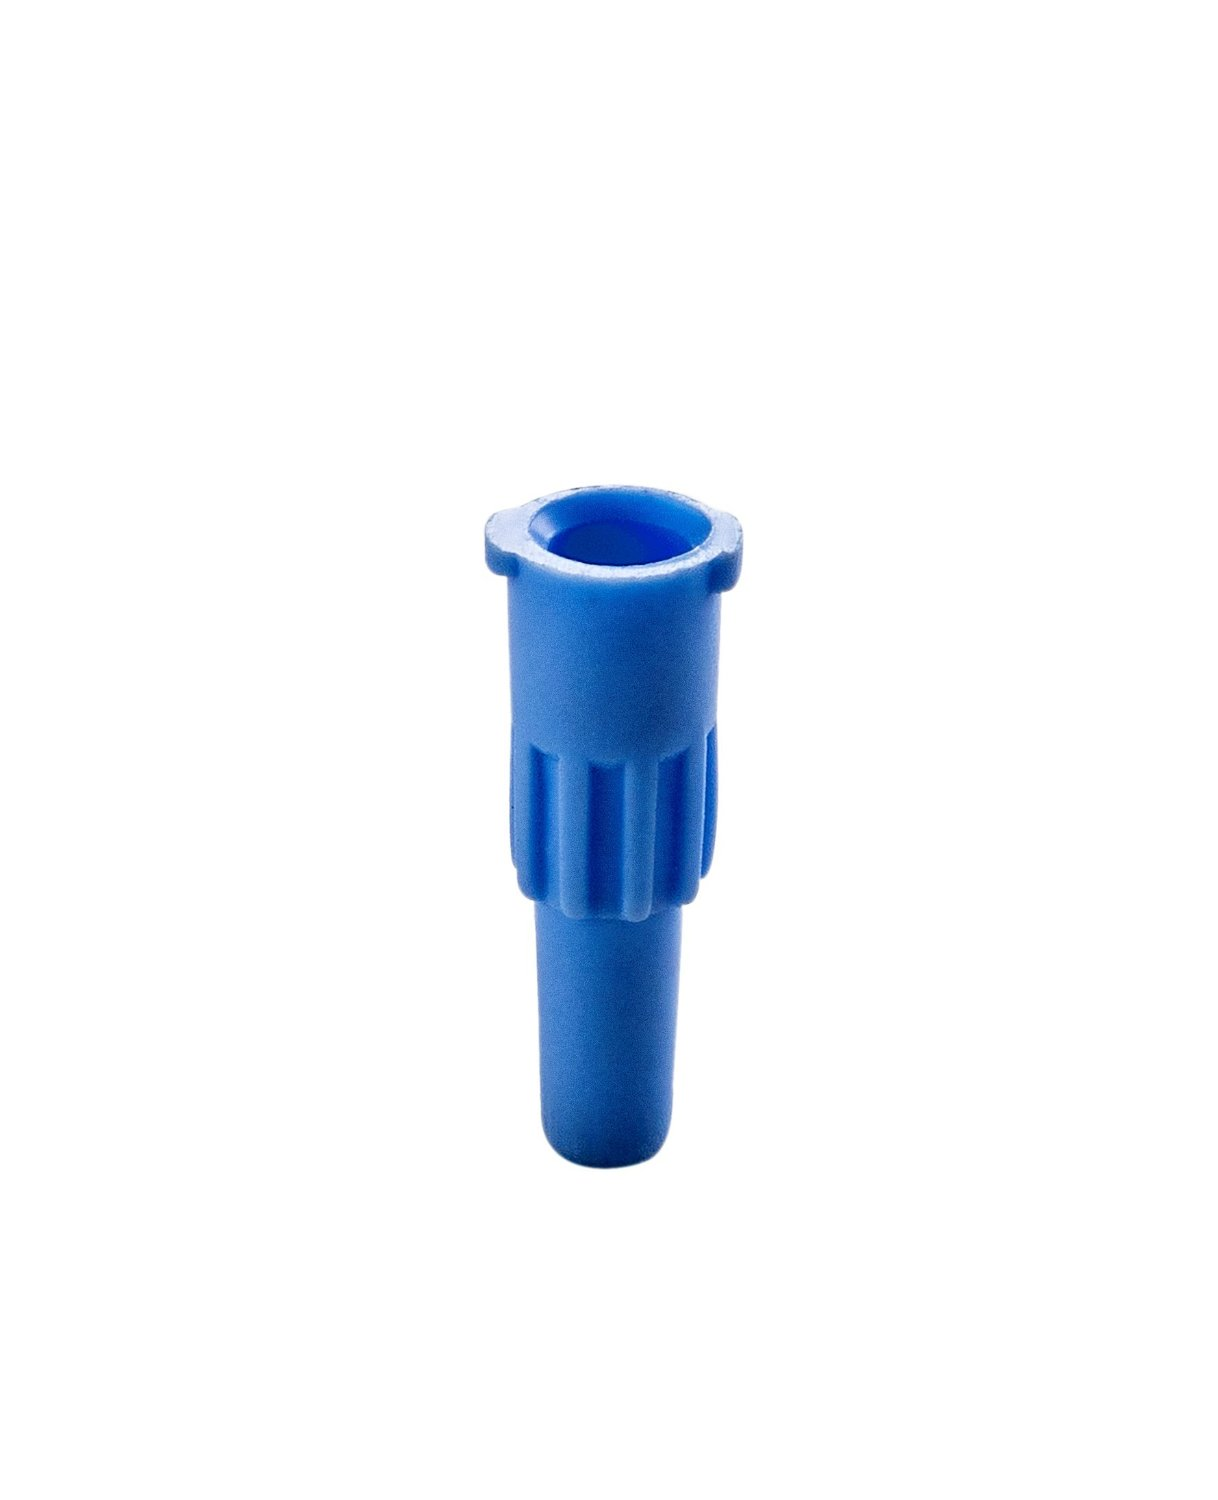 0.45 Micron 25mm Pack of 50 Omicron SFPS25NX PES Chromatography Syringe Filters Non-Sterile